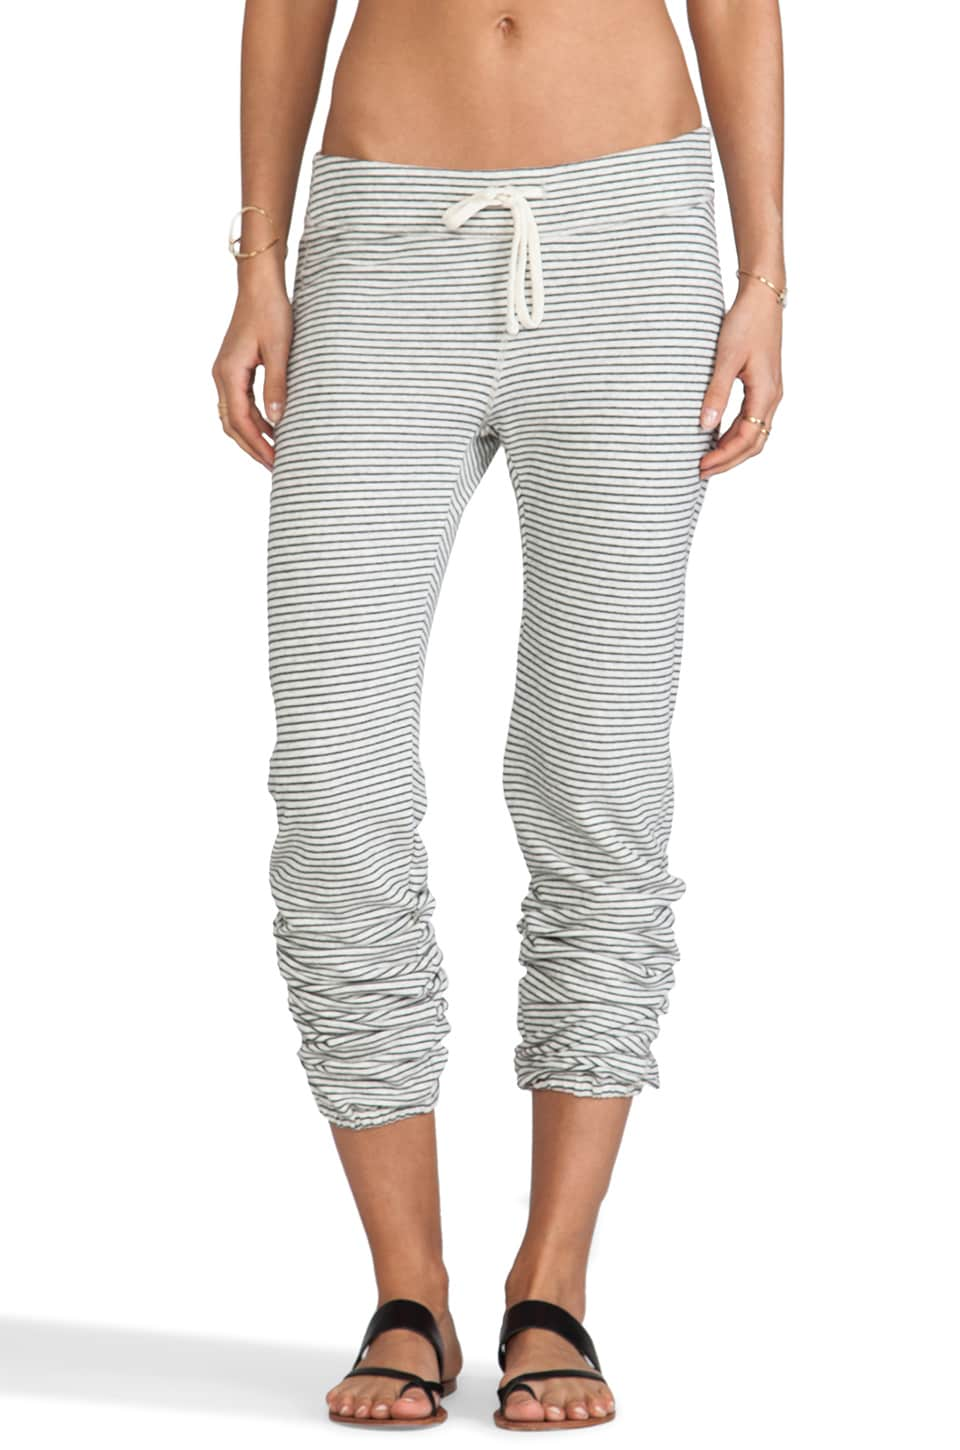 James Perse Mini Stripe Genie Sweat Pant in Heather Grey